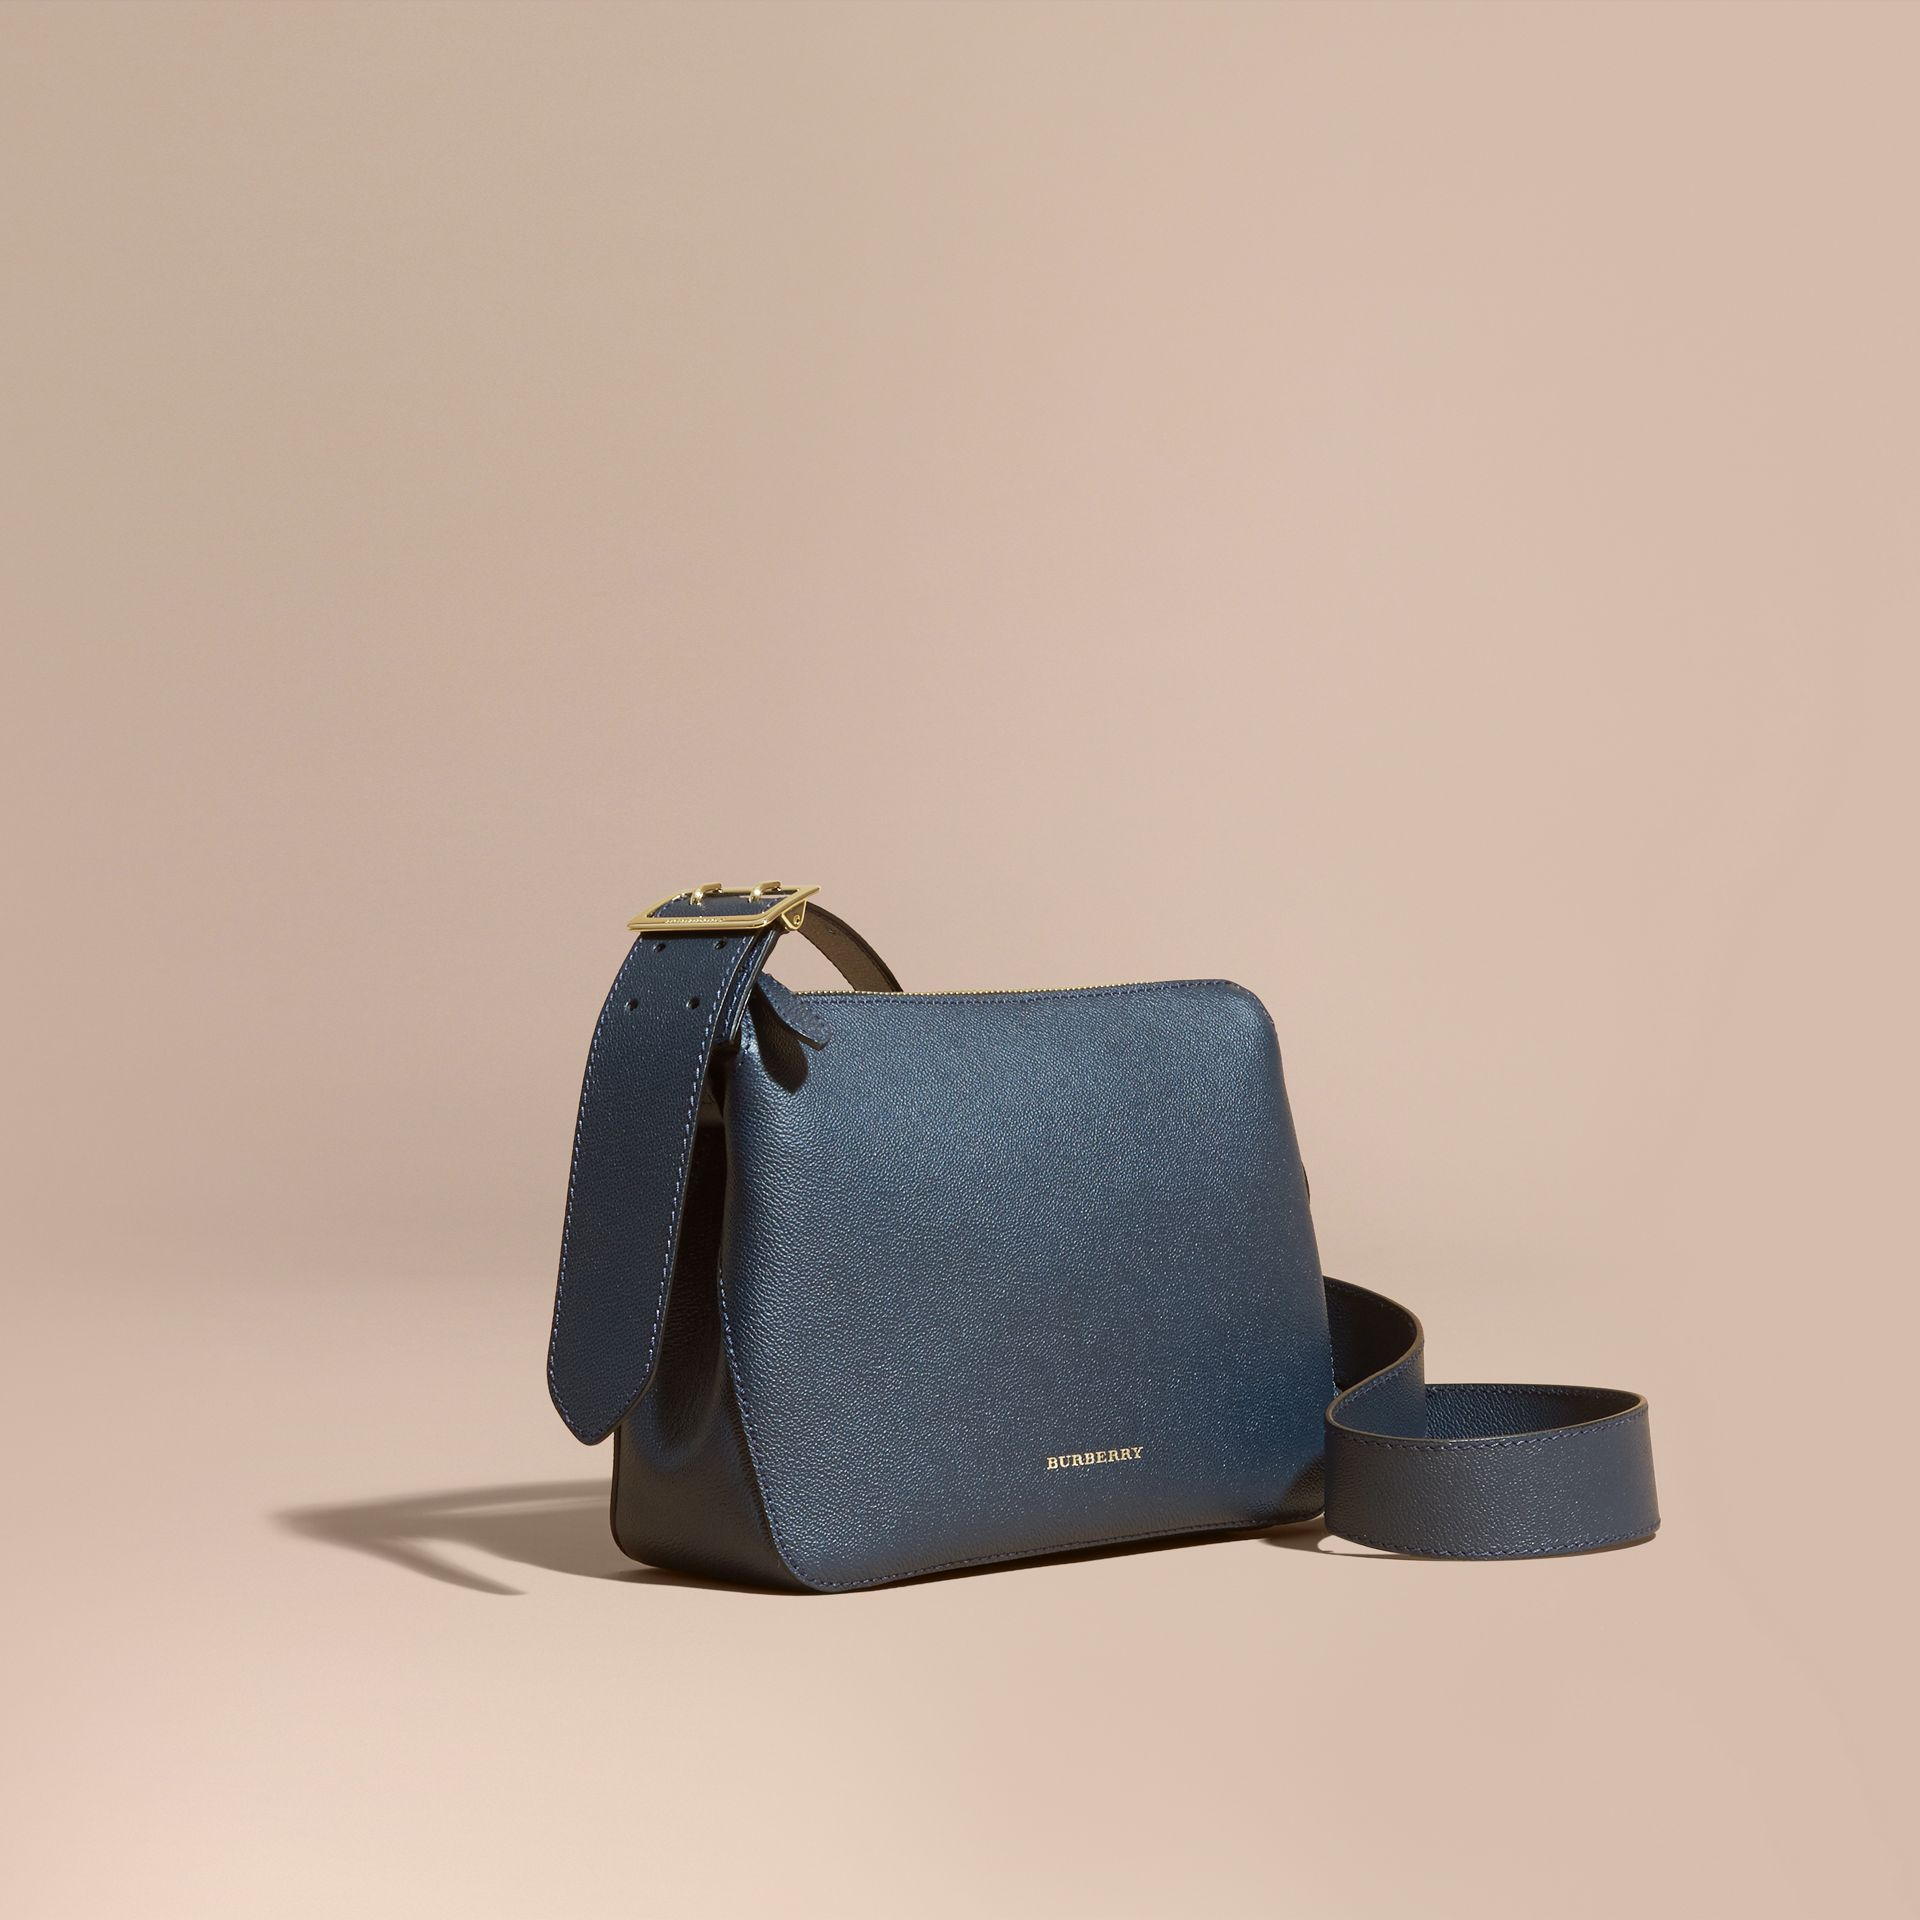 Buckle Detail Leather Crossbody Bag Blue Carbon - gallery image 1